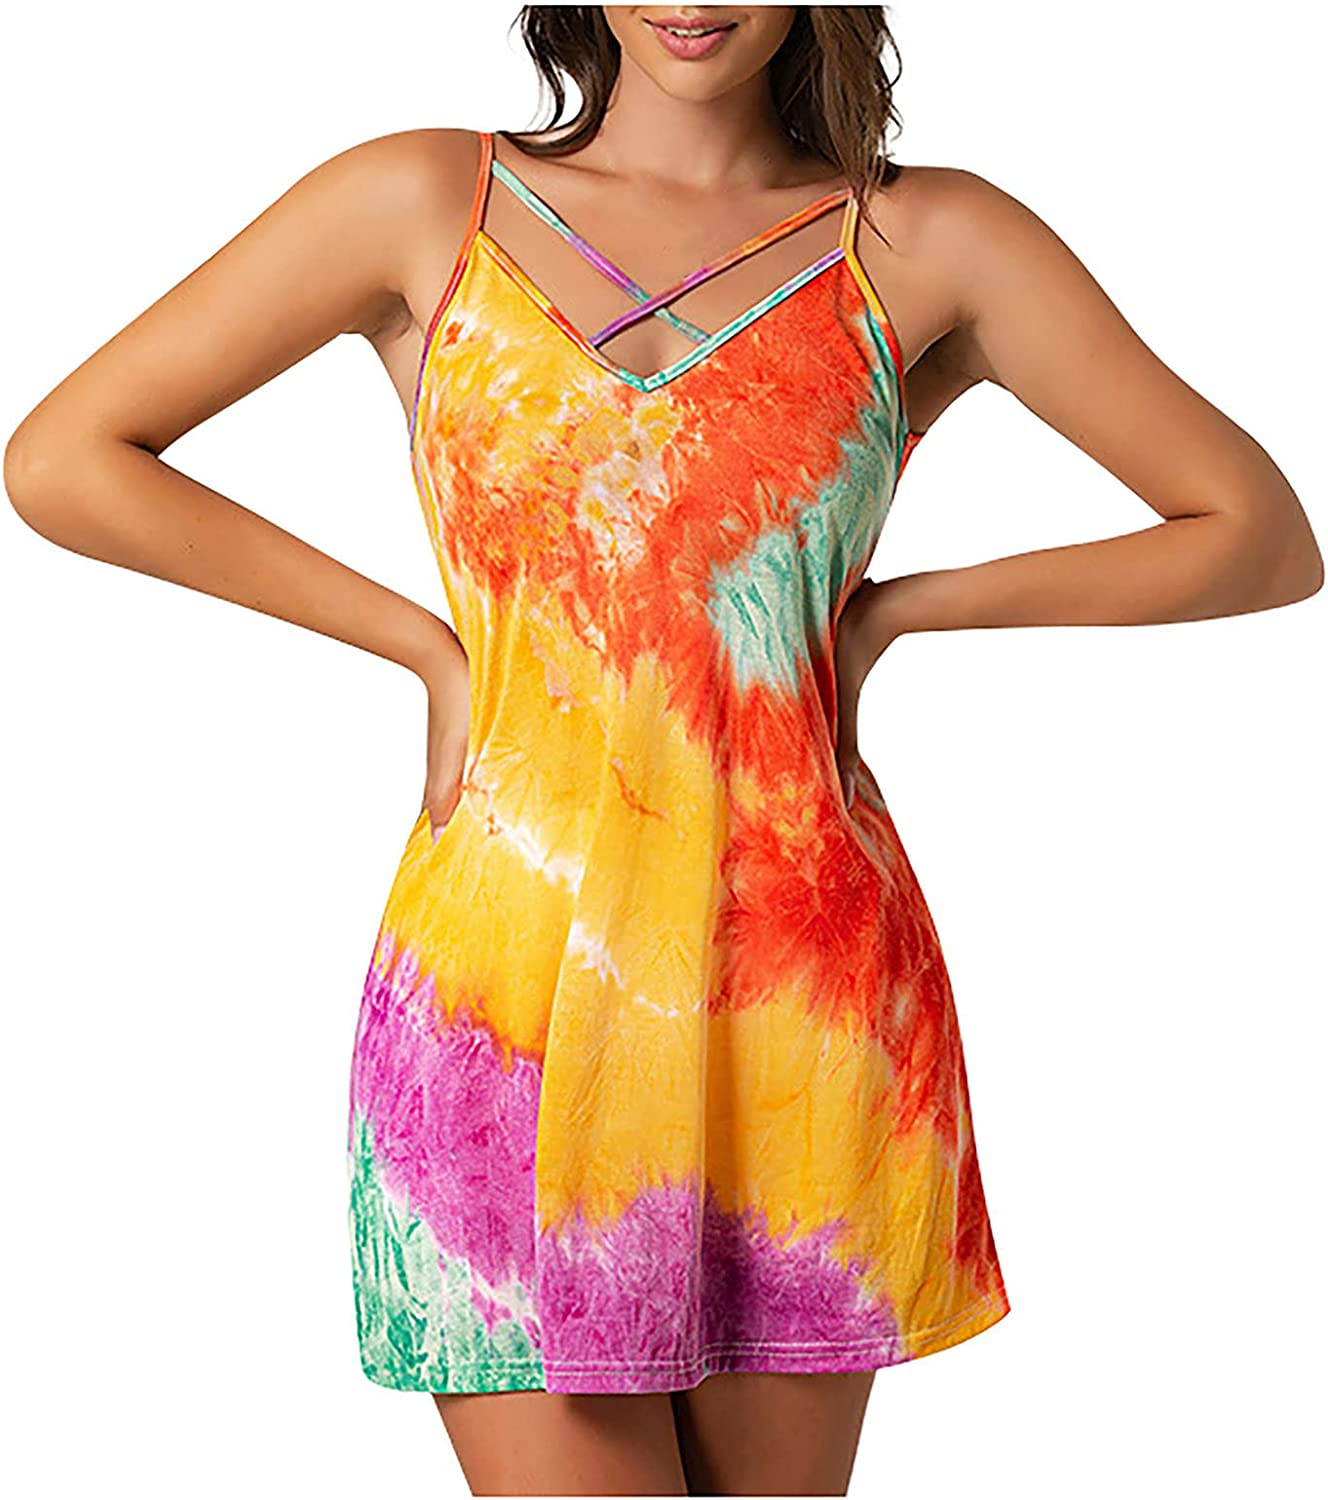 Astrid Sexy Summer Women Fashion Tie-Dyed Printing Camisole Vest Top Dress Two Wear